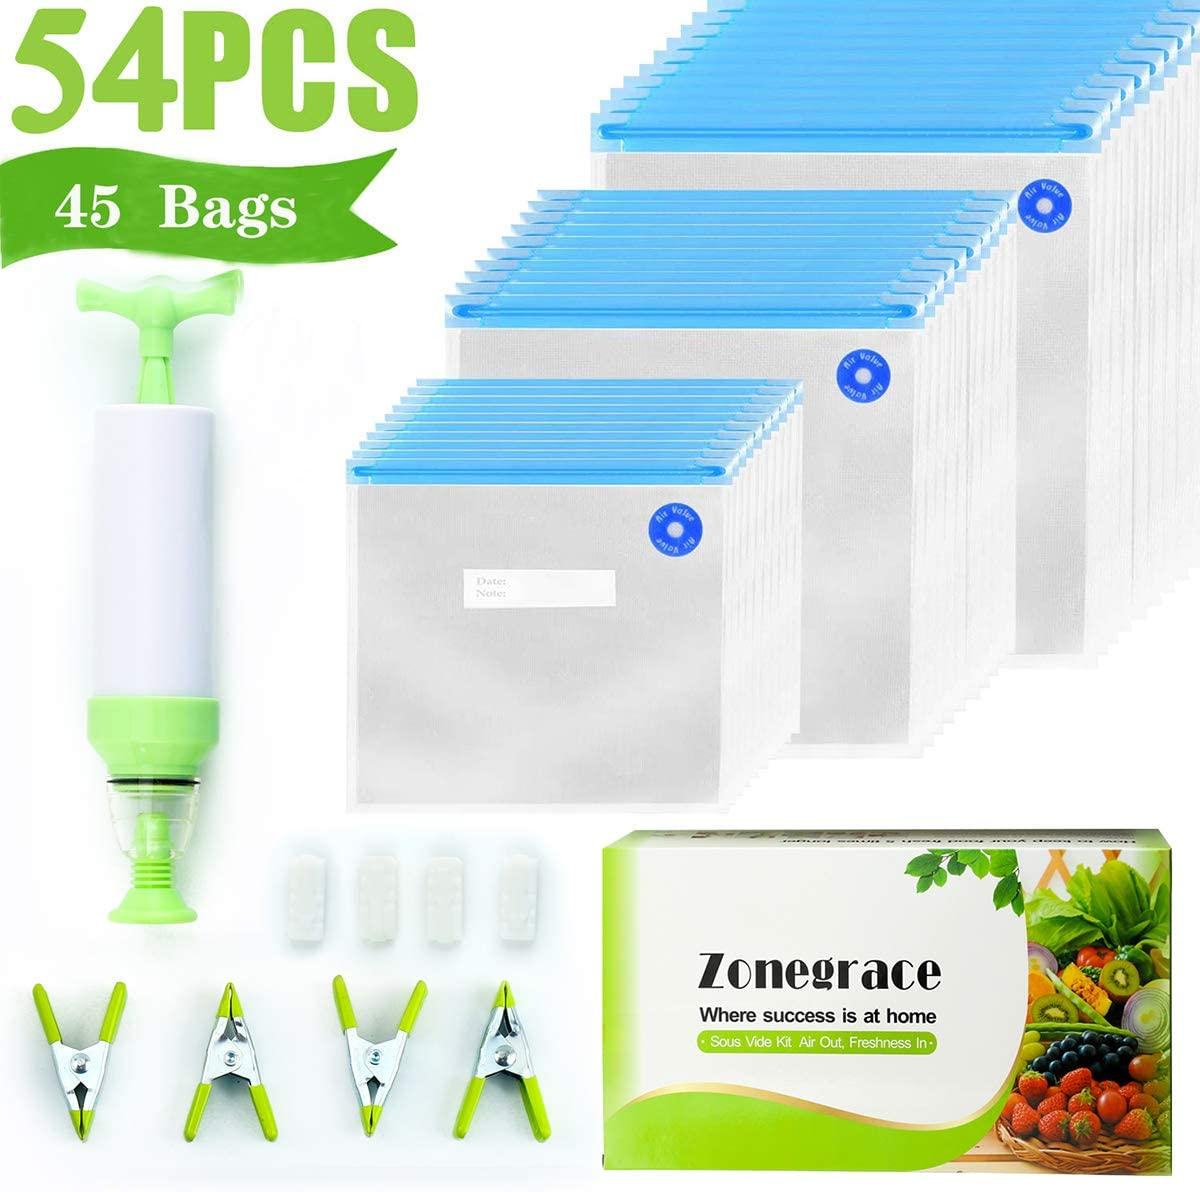 Zonegrace Sous Vide Bags 45 Reusable Vacuum Food Storage Bags for Anova and Joule Cookers - 3 sizes Sous Vide Bag Kit with Pump - 4 Sealing Clips for Food Storage and Sous Vide Cooking